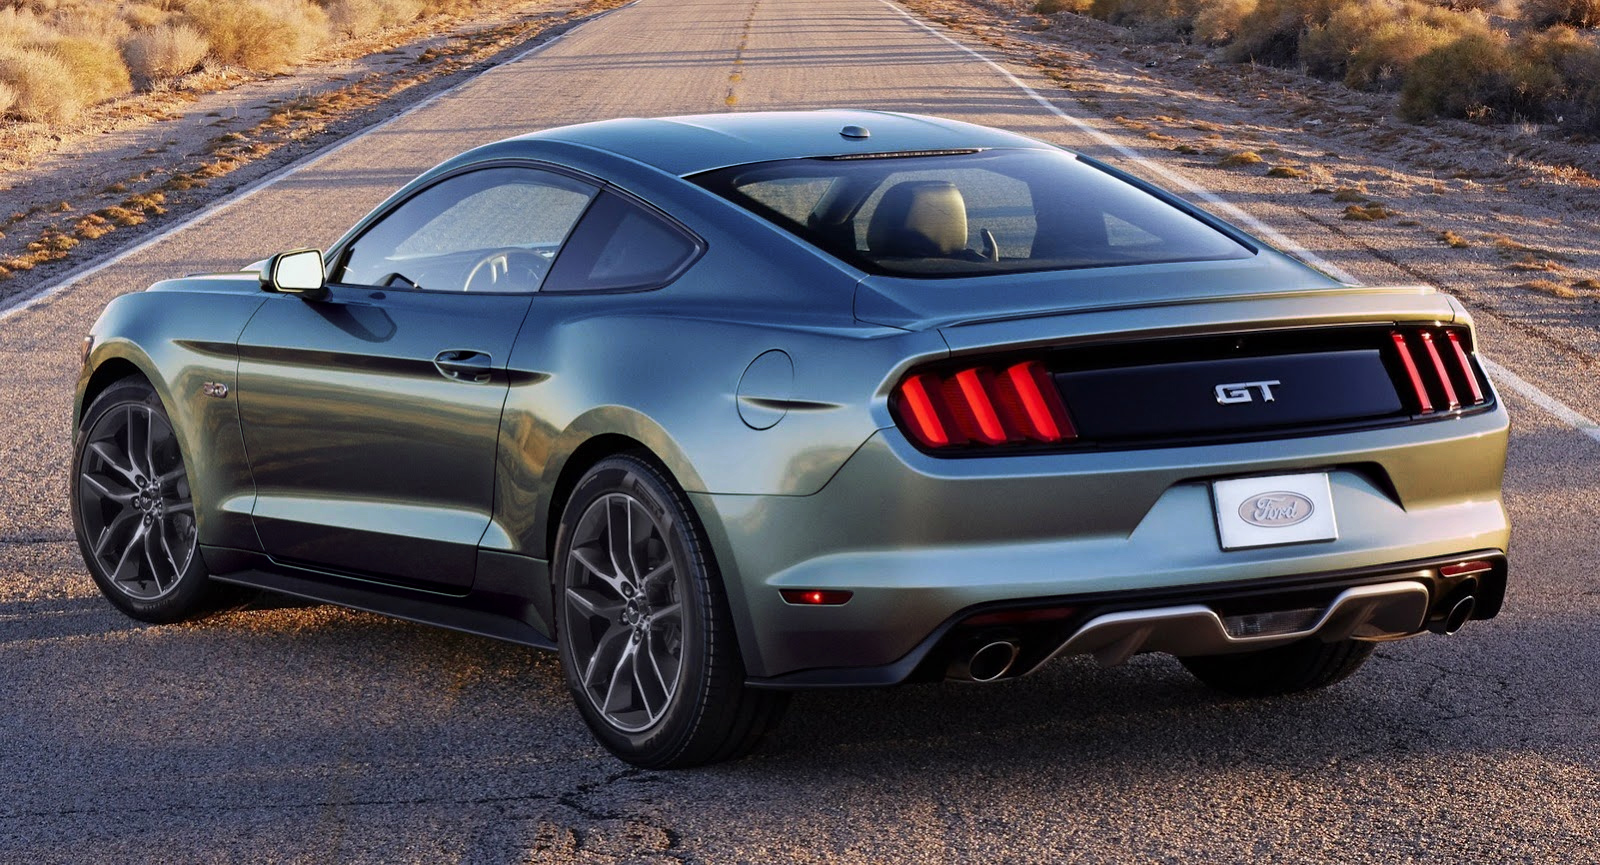 2015 Mustang Cobra Pictures